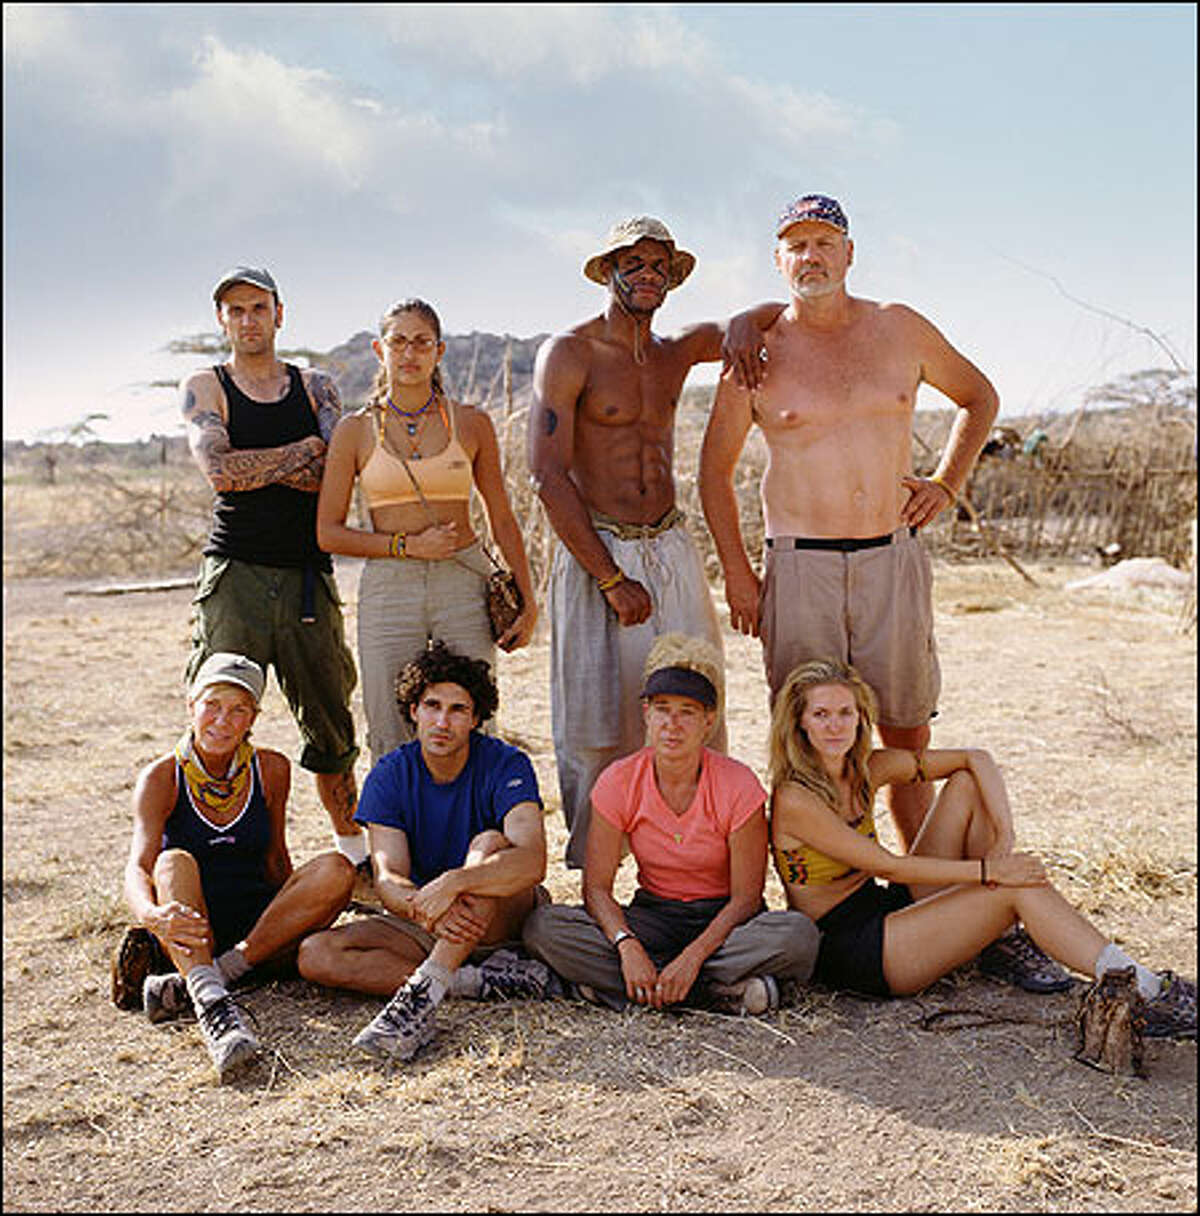 Members of the Boran tribe: AFRICA, seated from left, Kim Johnson, Ethan Zohn, Diane Ogden and Kelly Goldsmith, and, standing from left, Lex van den Berghe, Jessie Camacho, Clarence Black and Tom Buchanan.